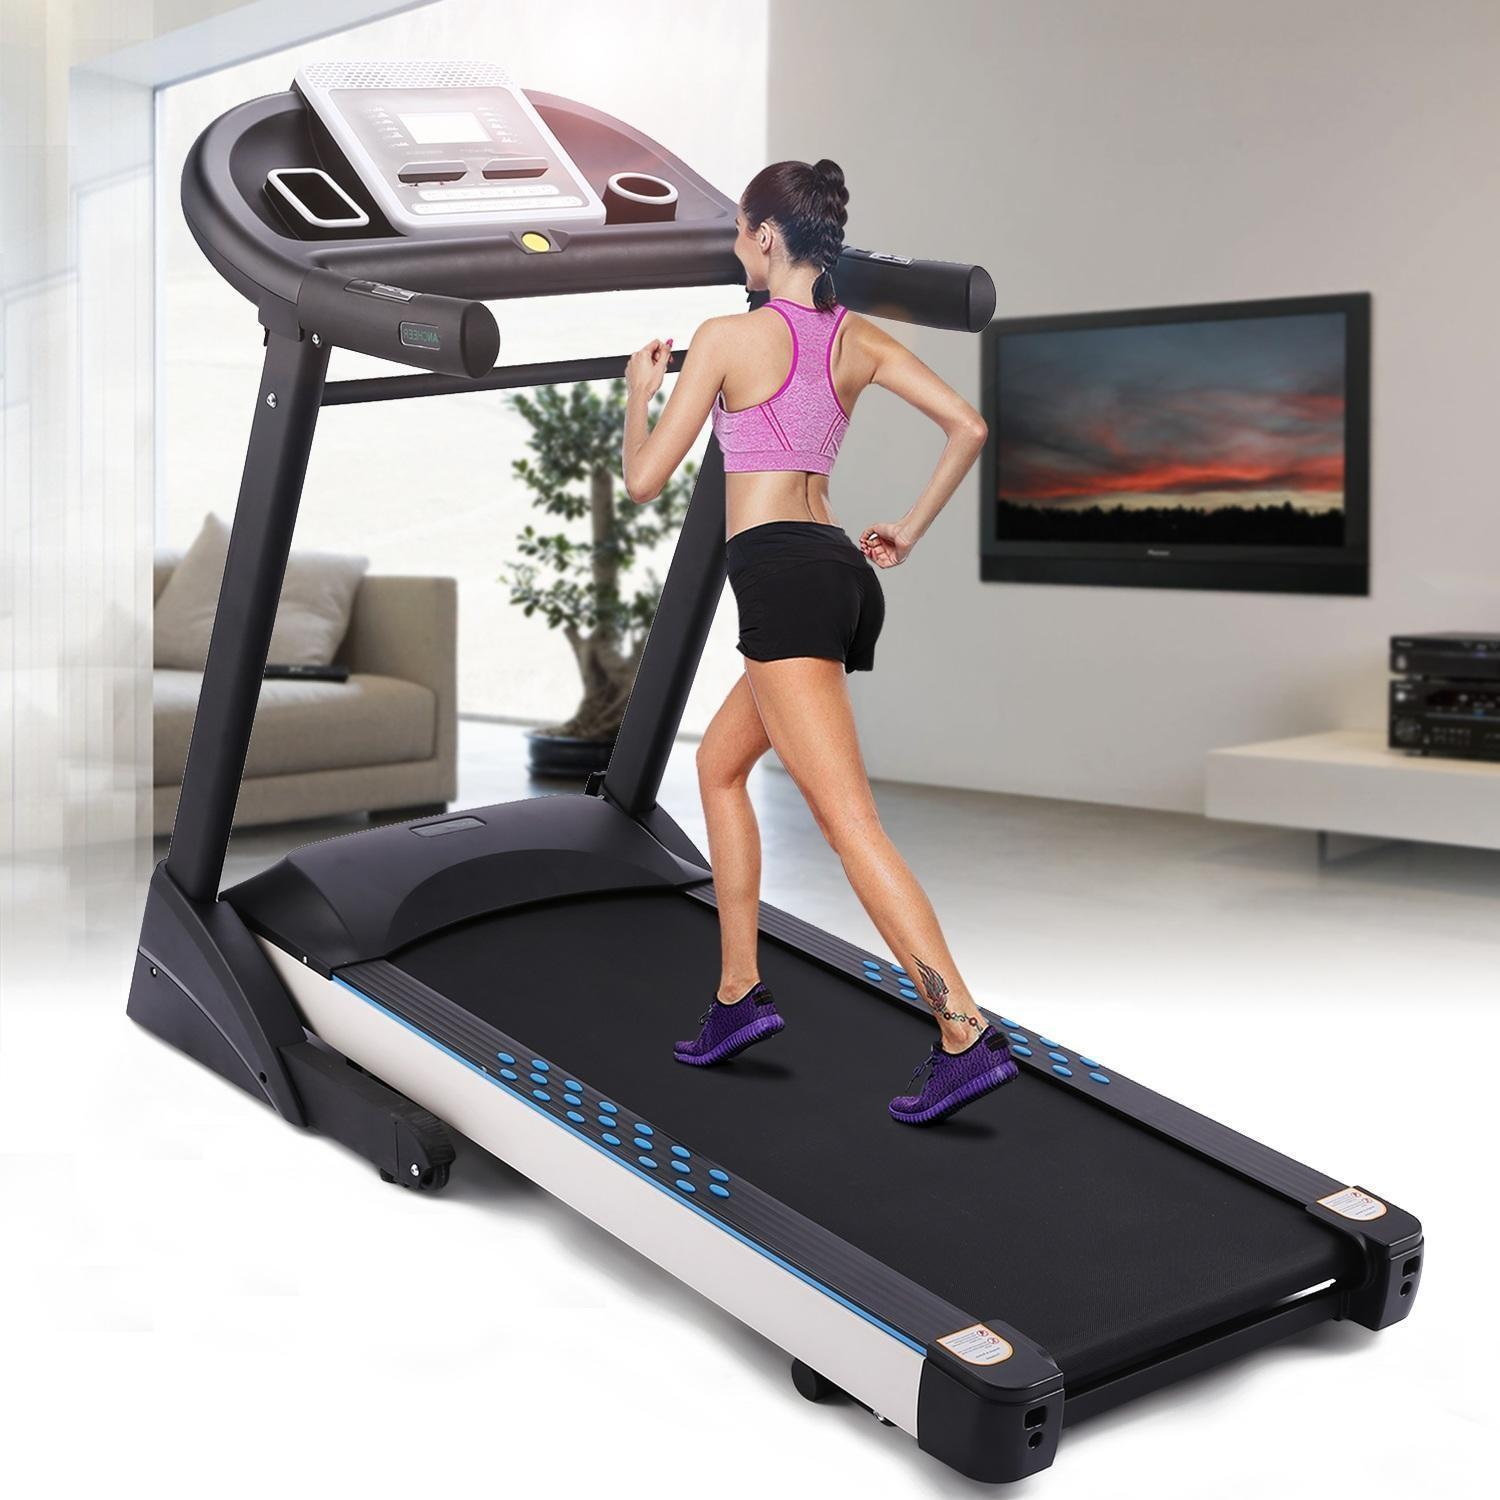 Clearance! Ancheer Folding Electric Treadmill Black 3.0HP Motorized Treadmill With Mobile Phone Holder and 5inch HD Screen Exercise Equipment Walking Running Machine For Gym Home